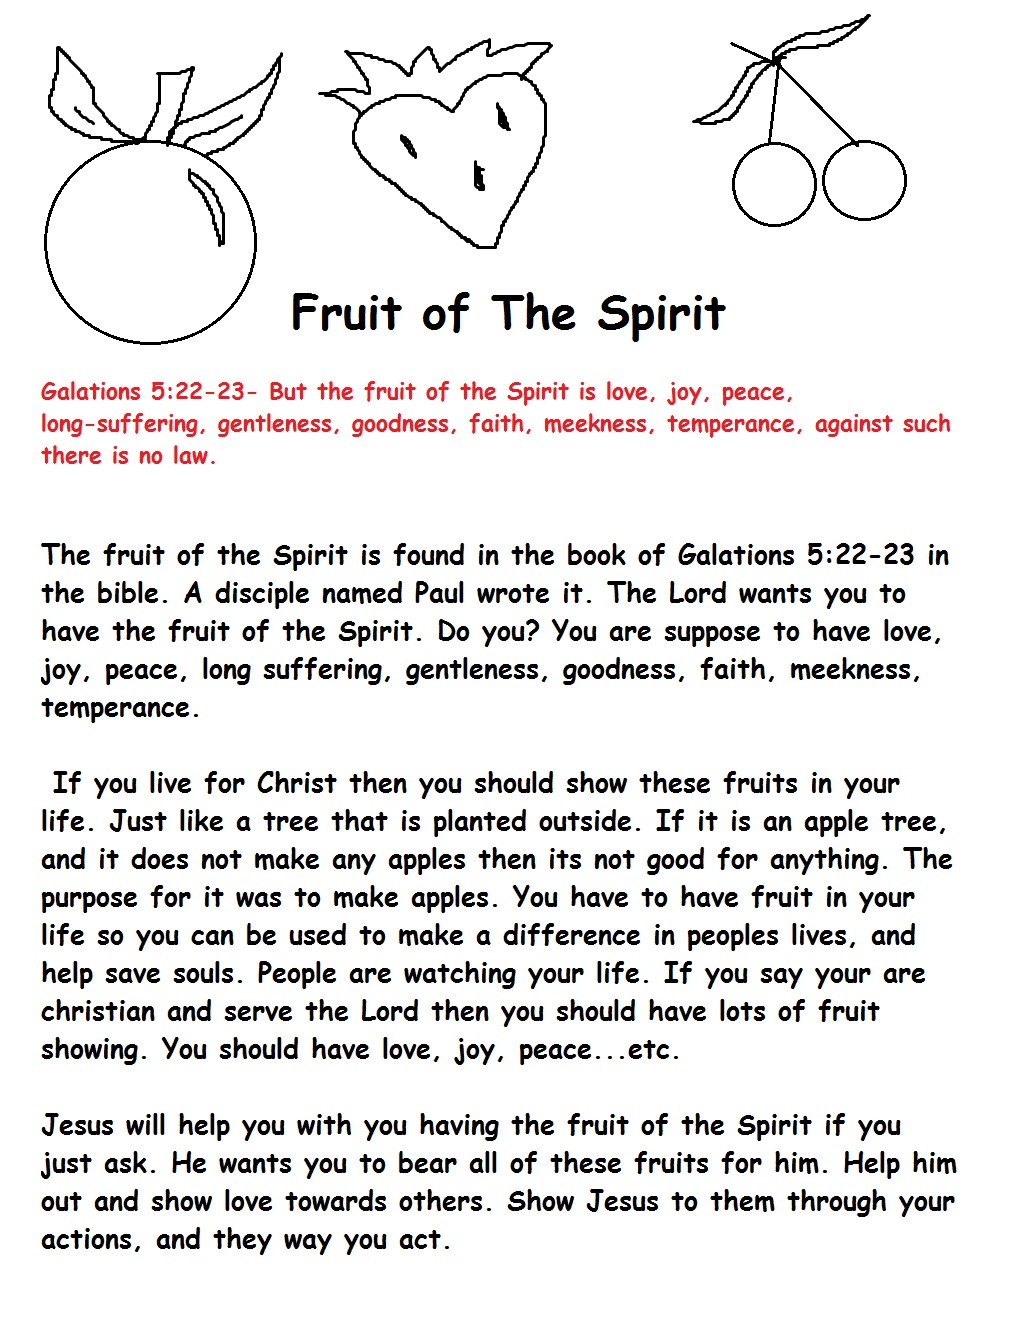 Worksheets Fruit Of The Spirit Worksheets fruit of the spirit sunday school lesson printable version